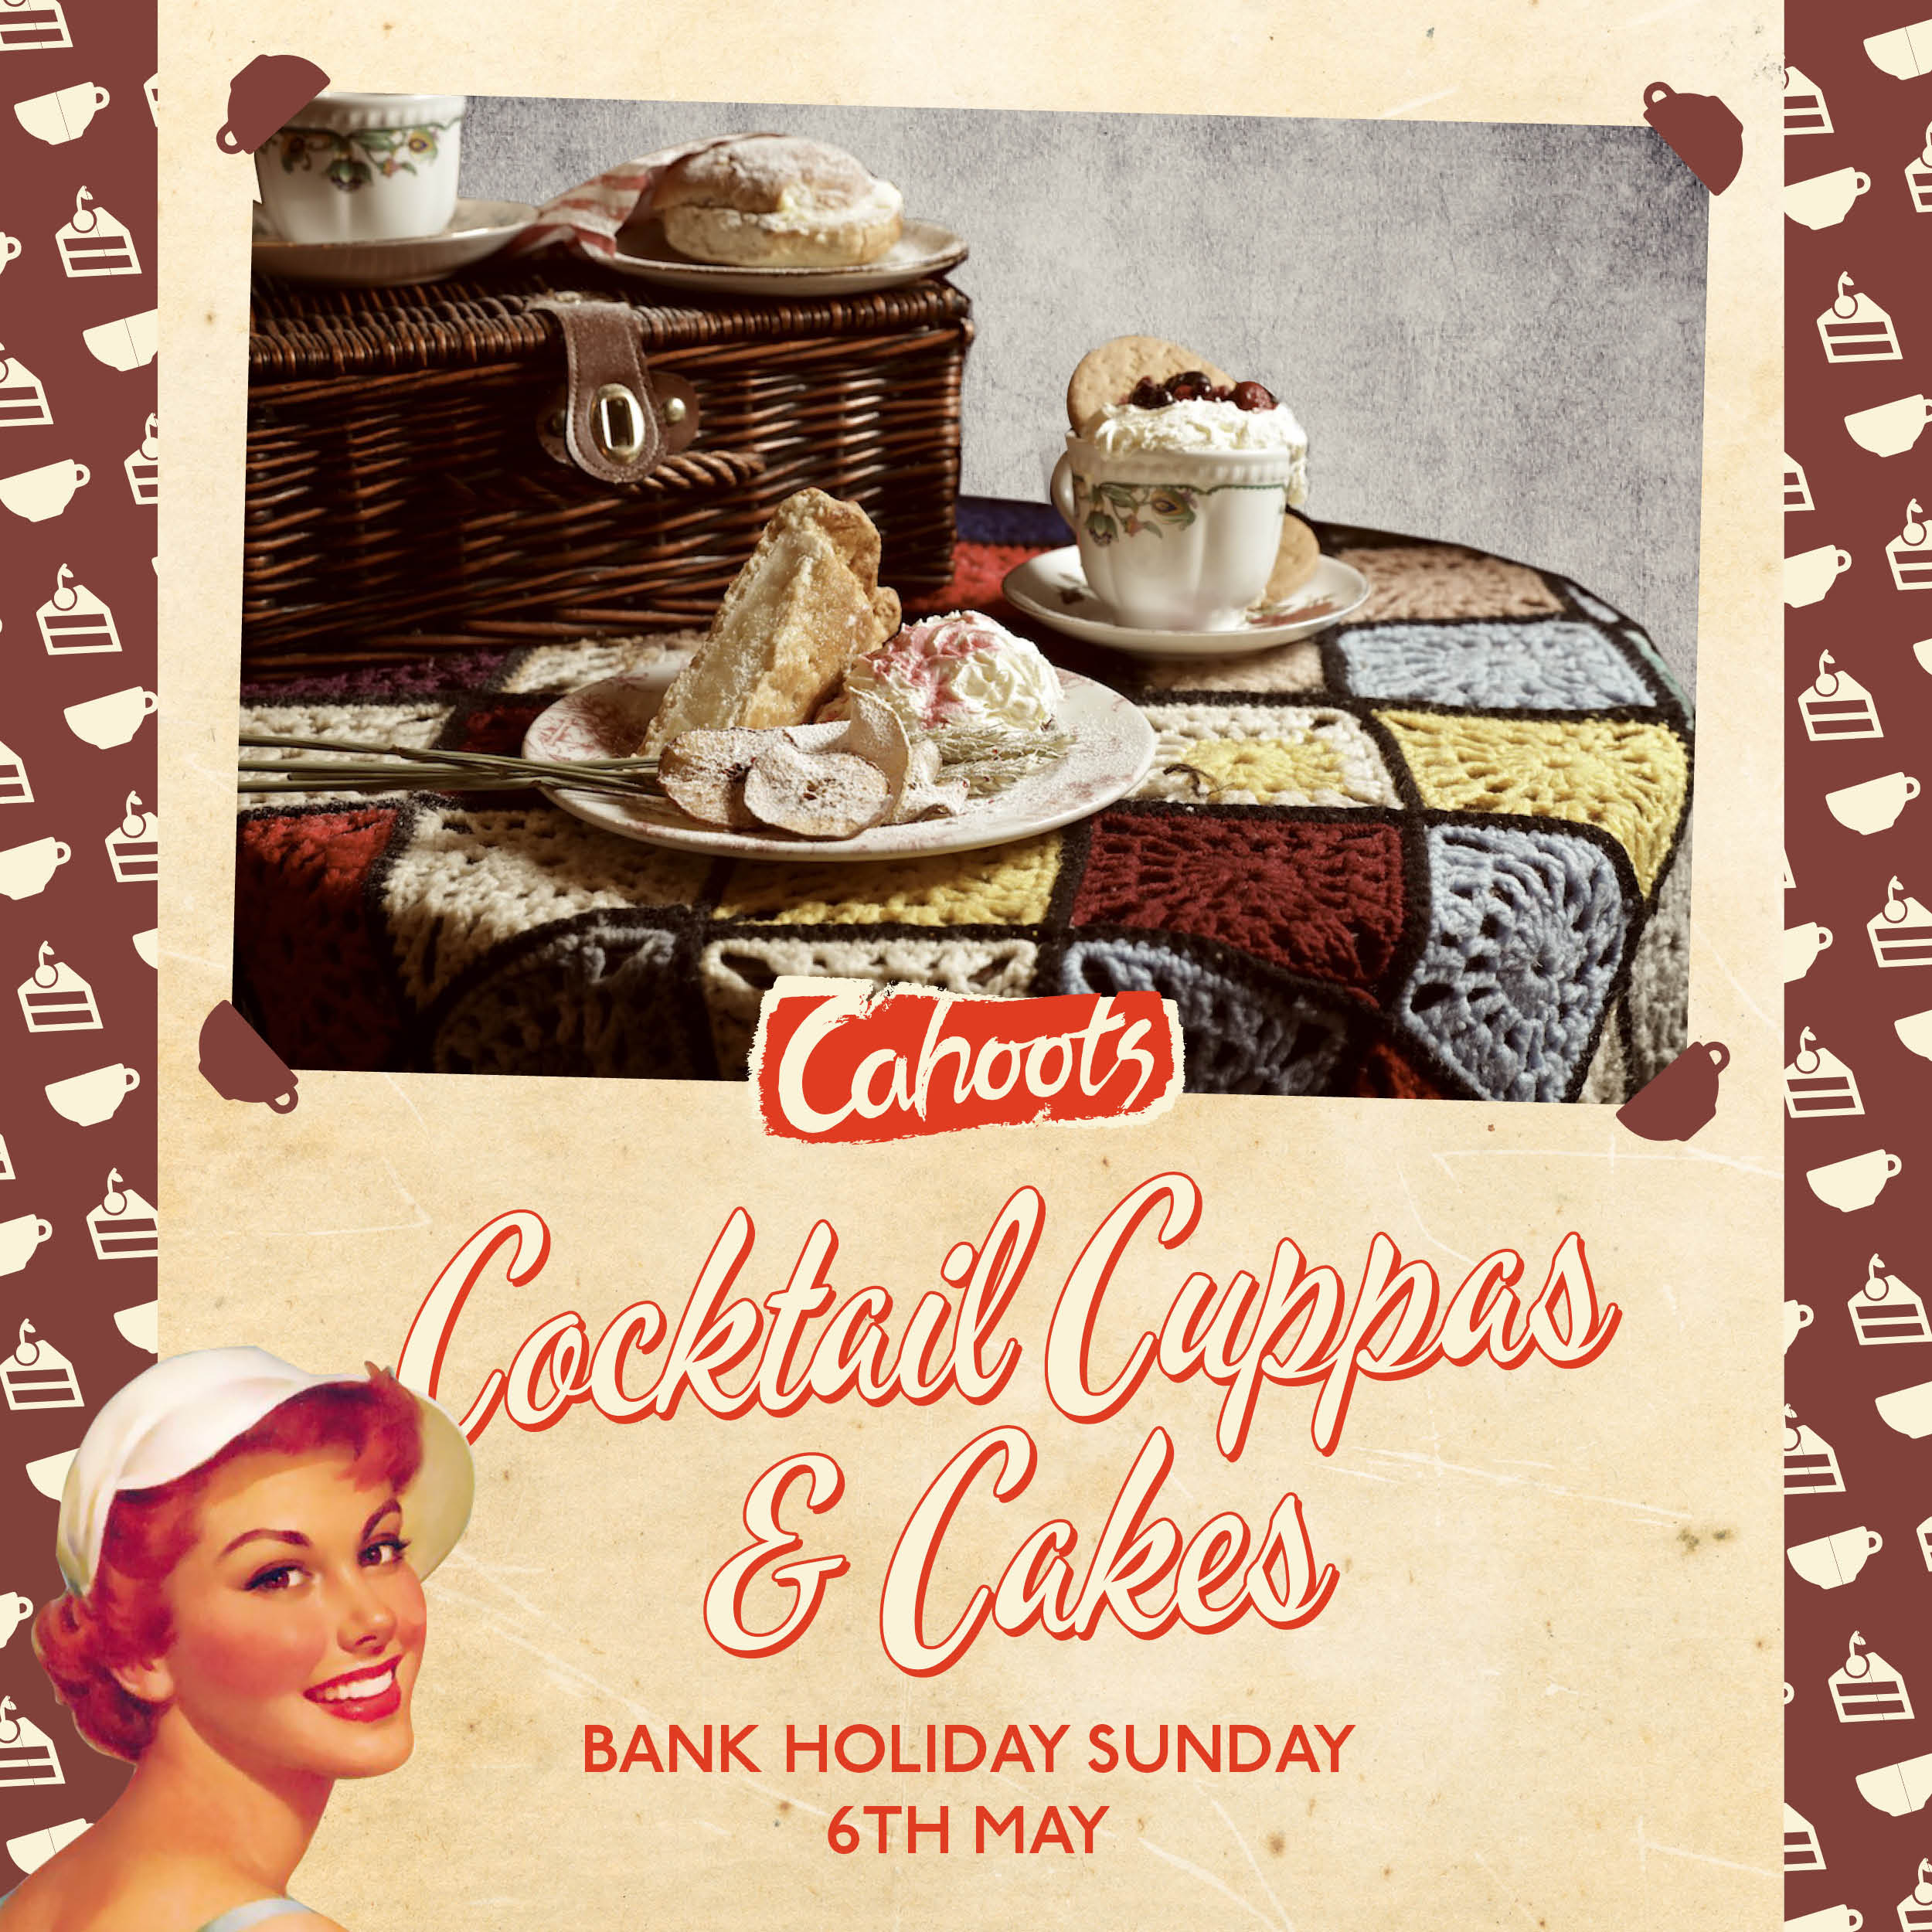 Bank Holiday Cocktail Cuppas & Cakes